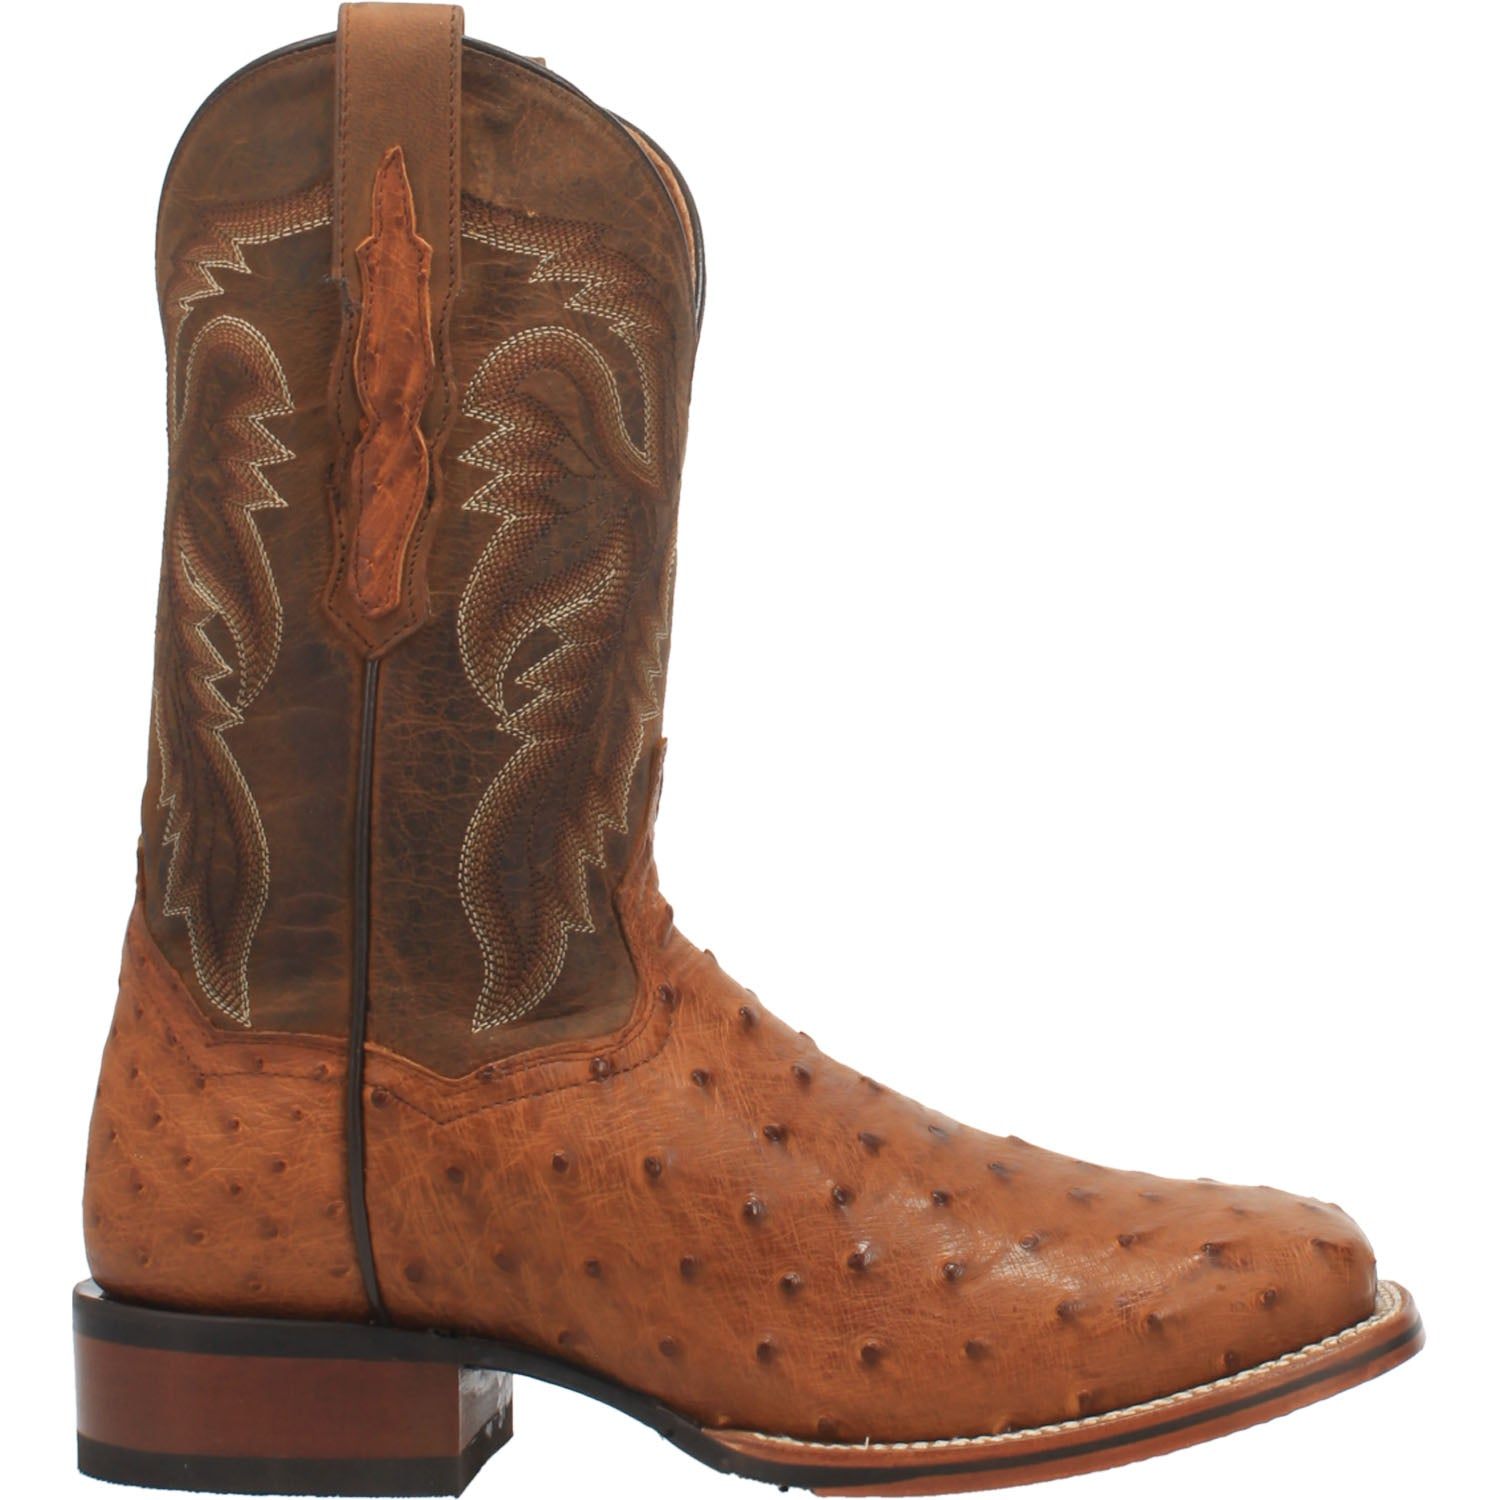 ALAMOSA FULL QUILL OSTRICH BOOT 15677888659498